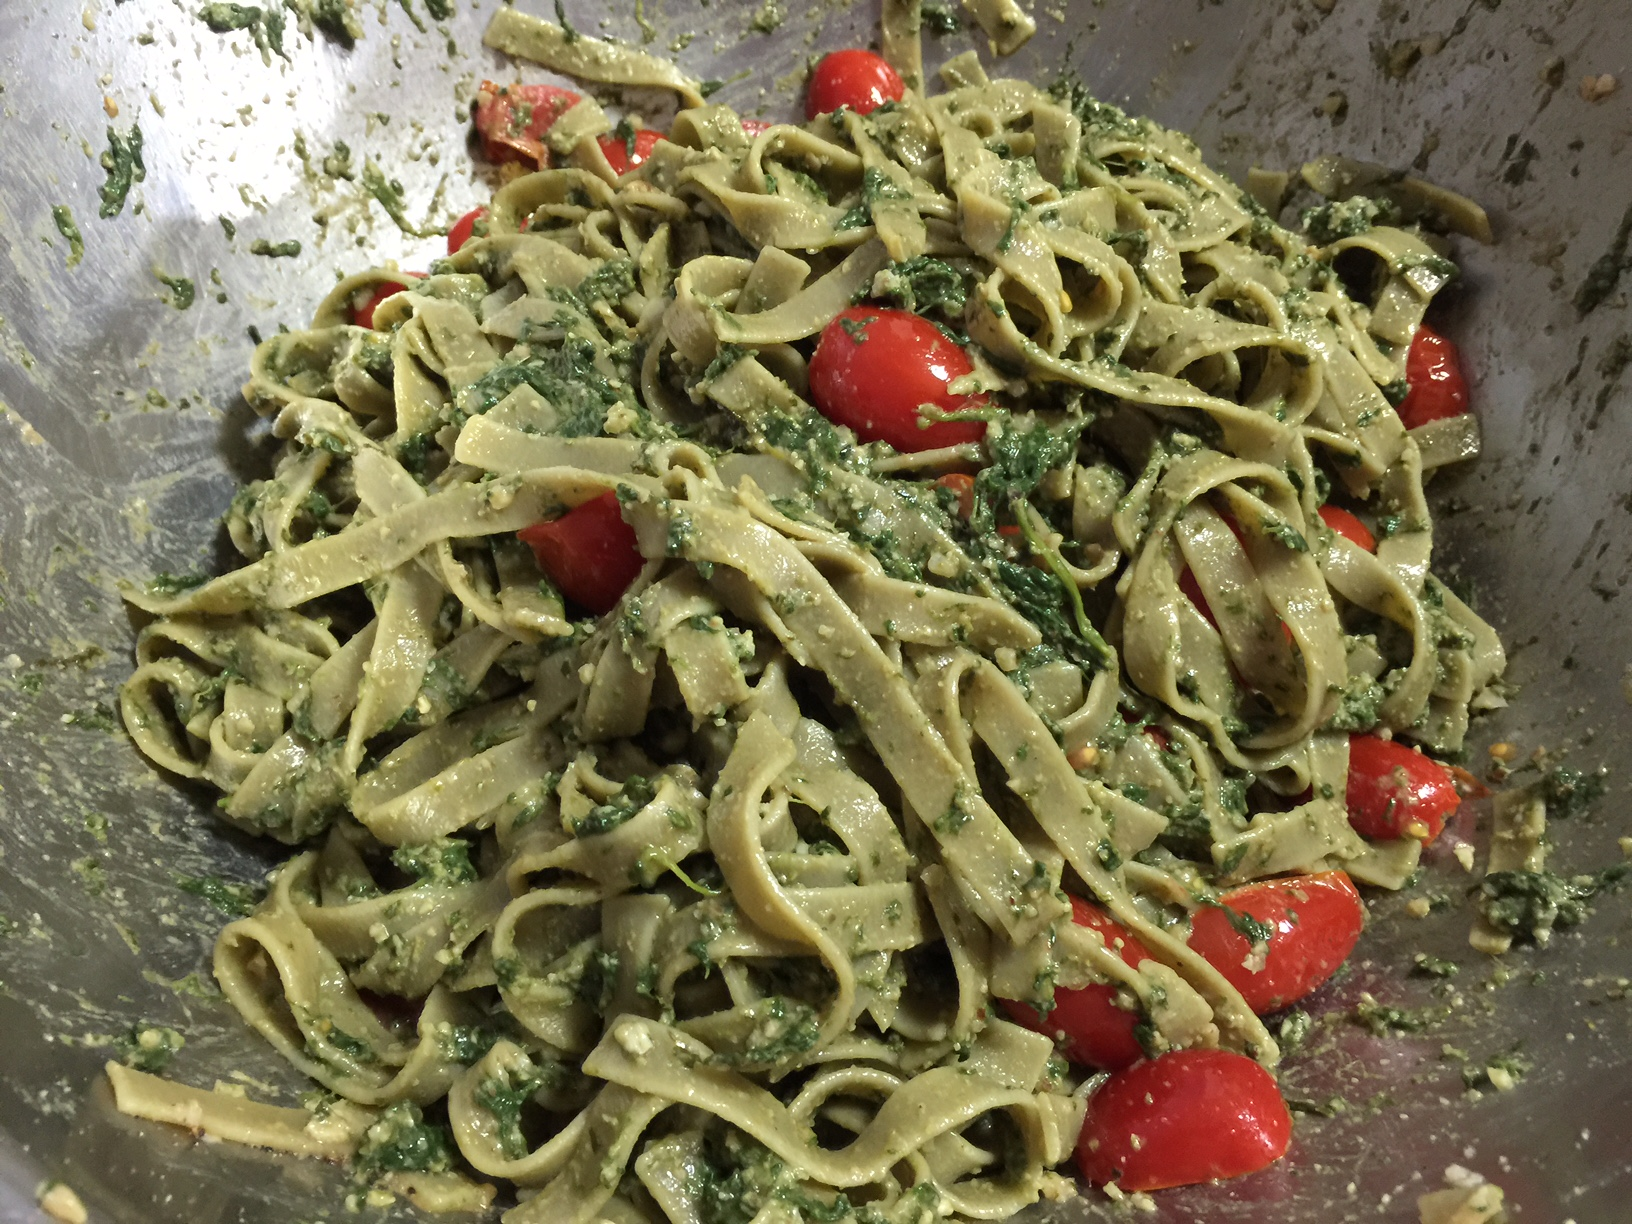 ROASTED GARLIC SPINACH PESTO 1